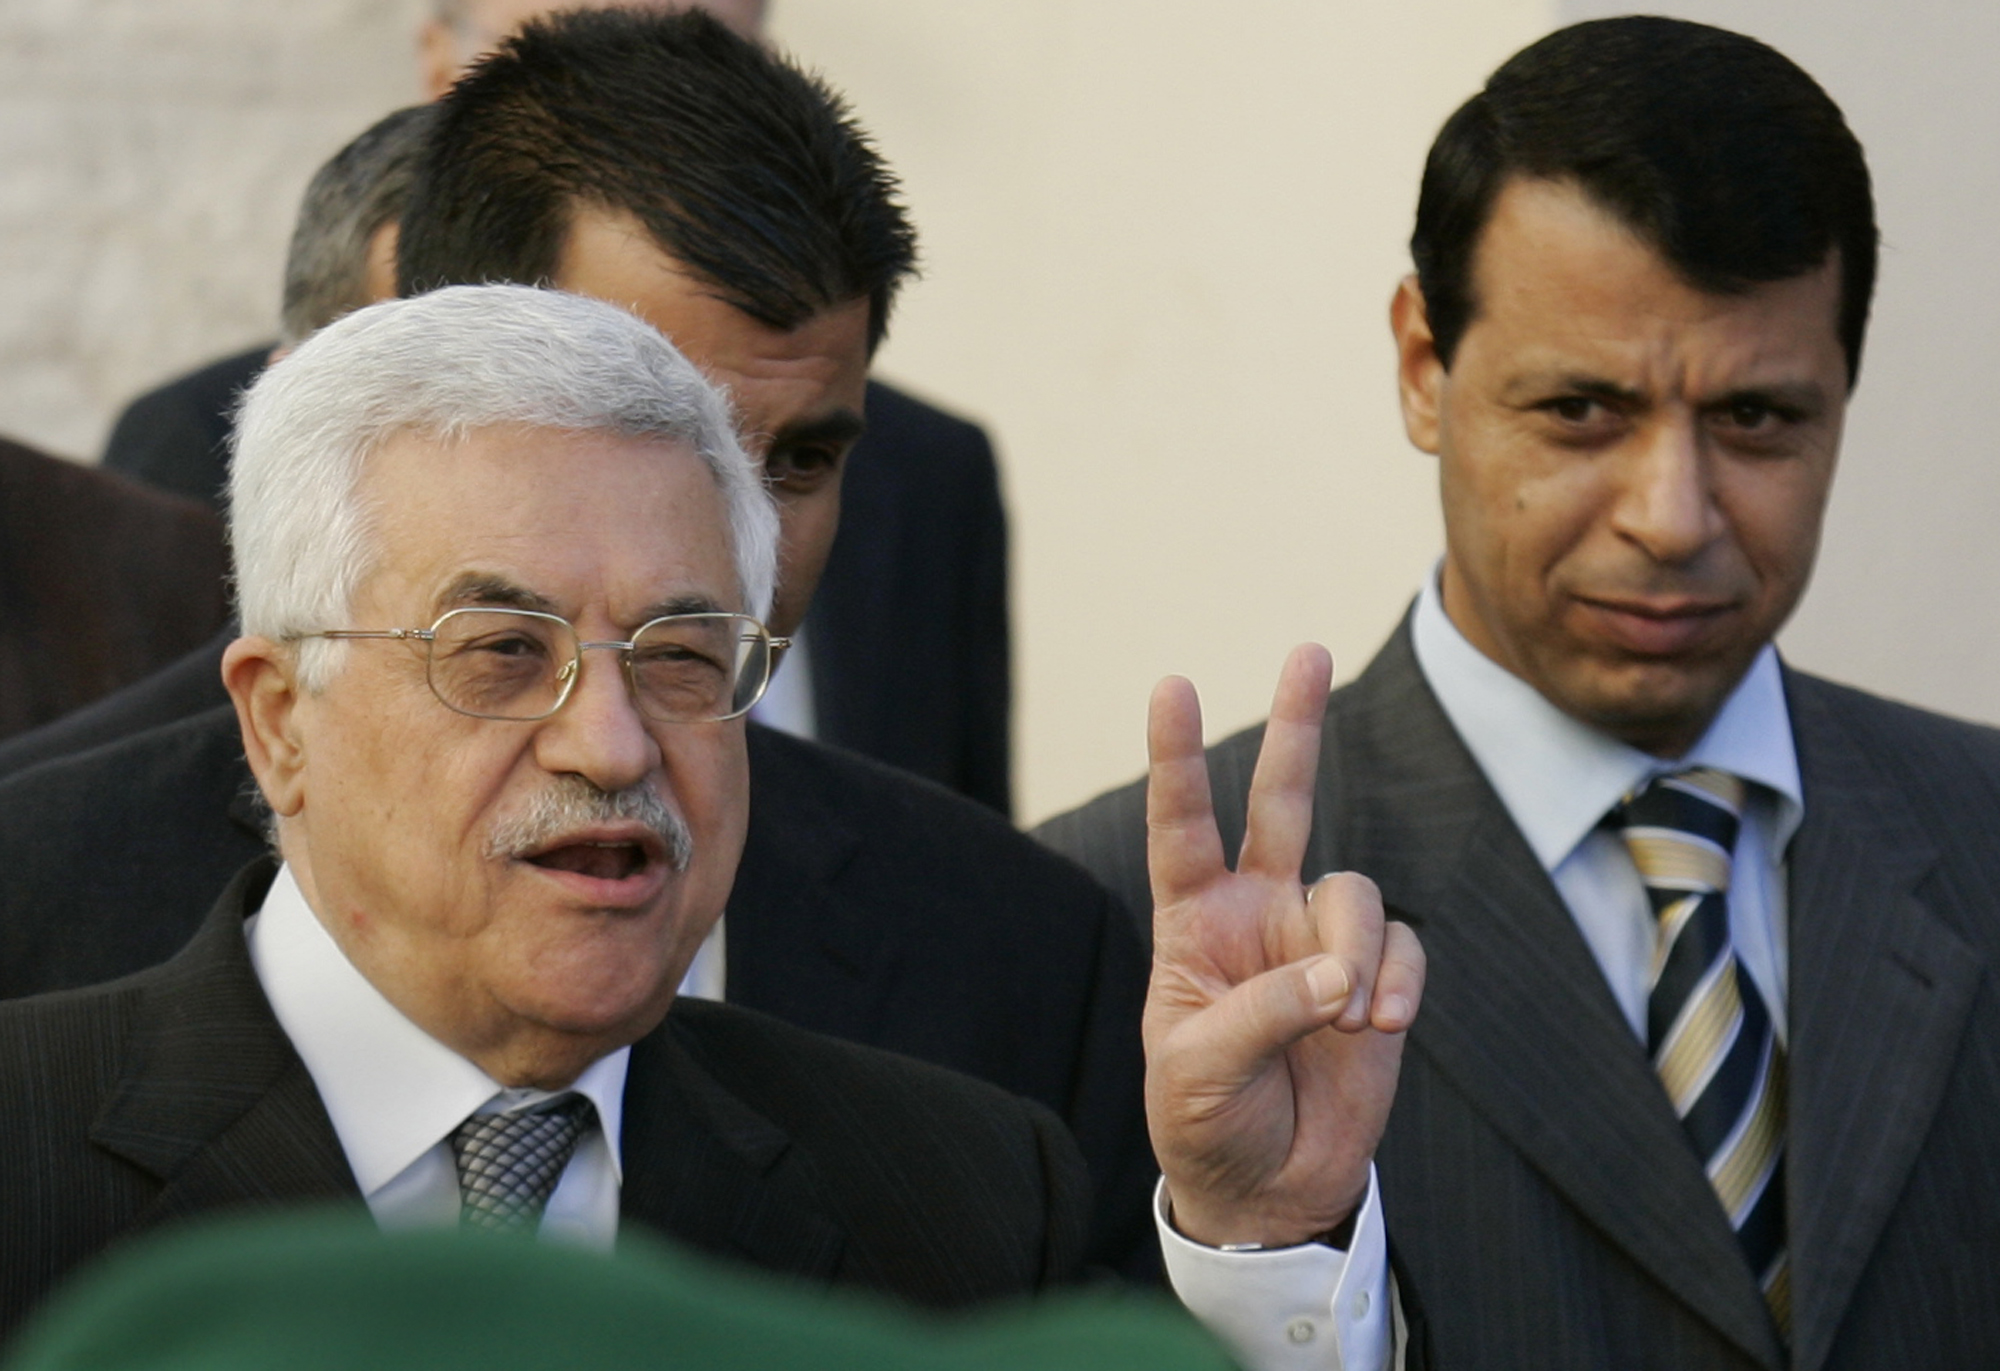 Palestinian diplomat: 'No honor' in Arab rush to normalization